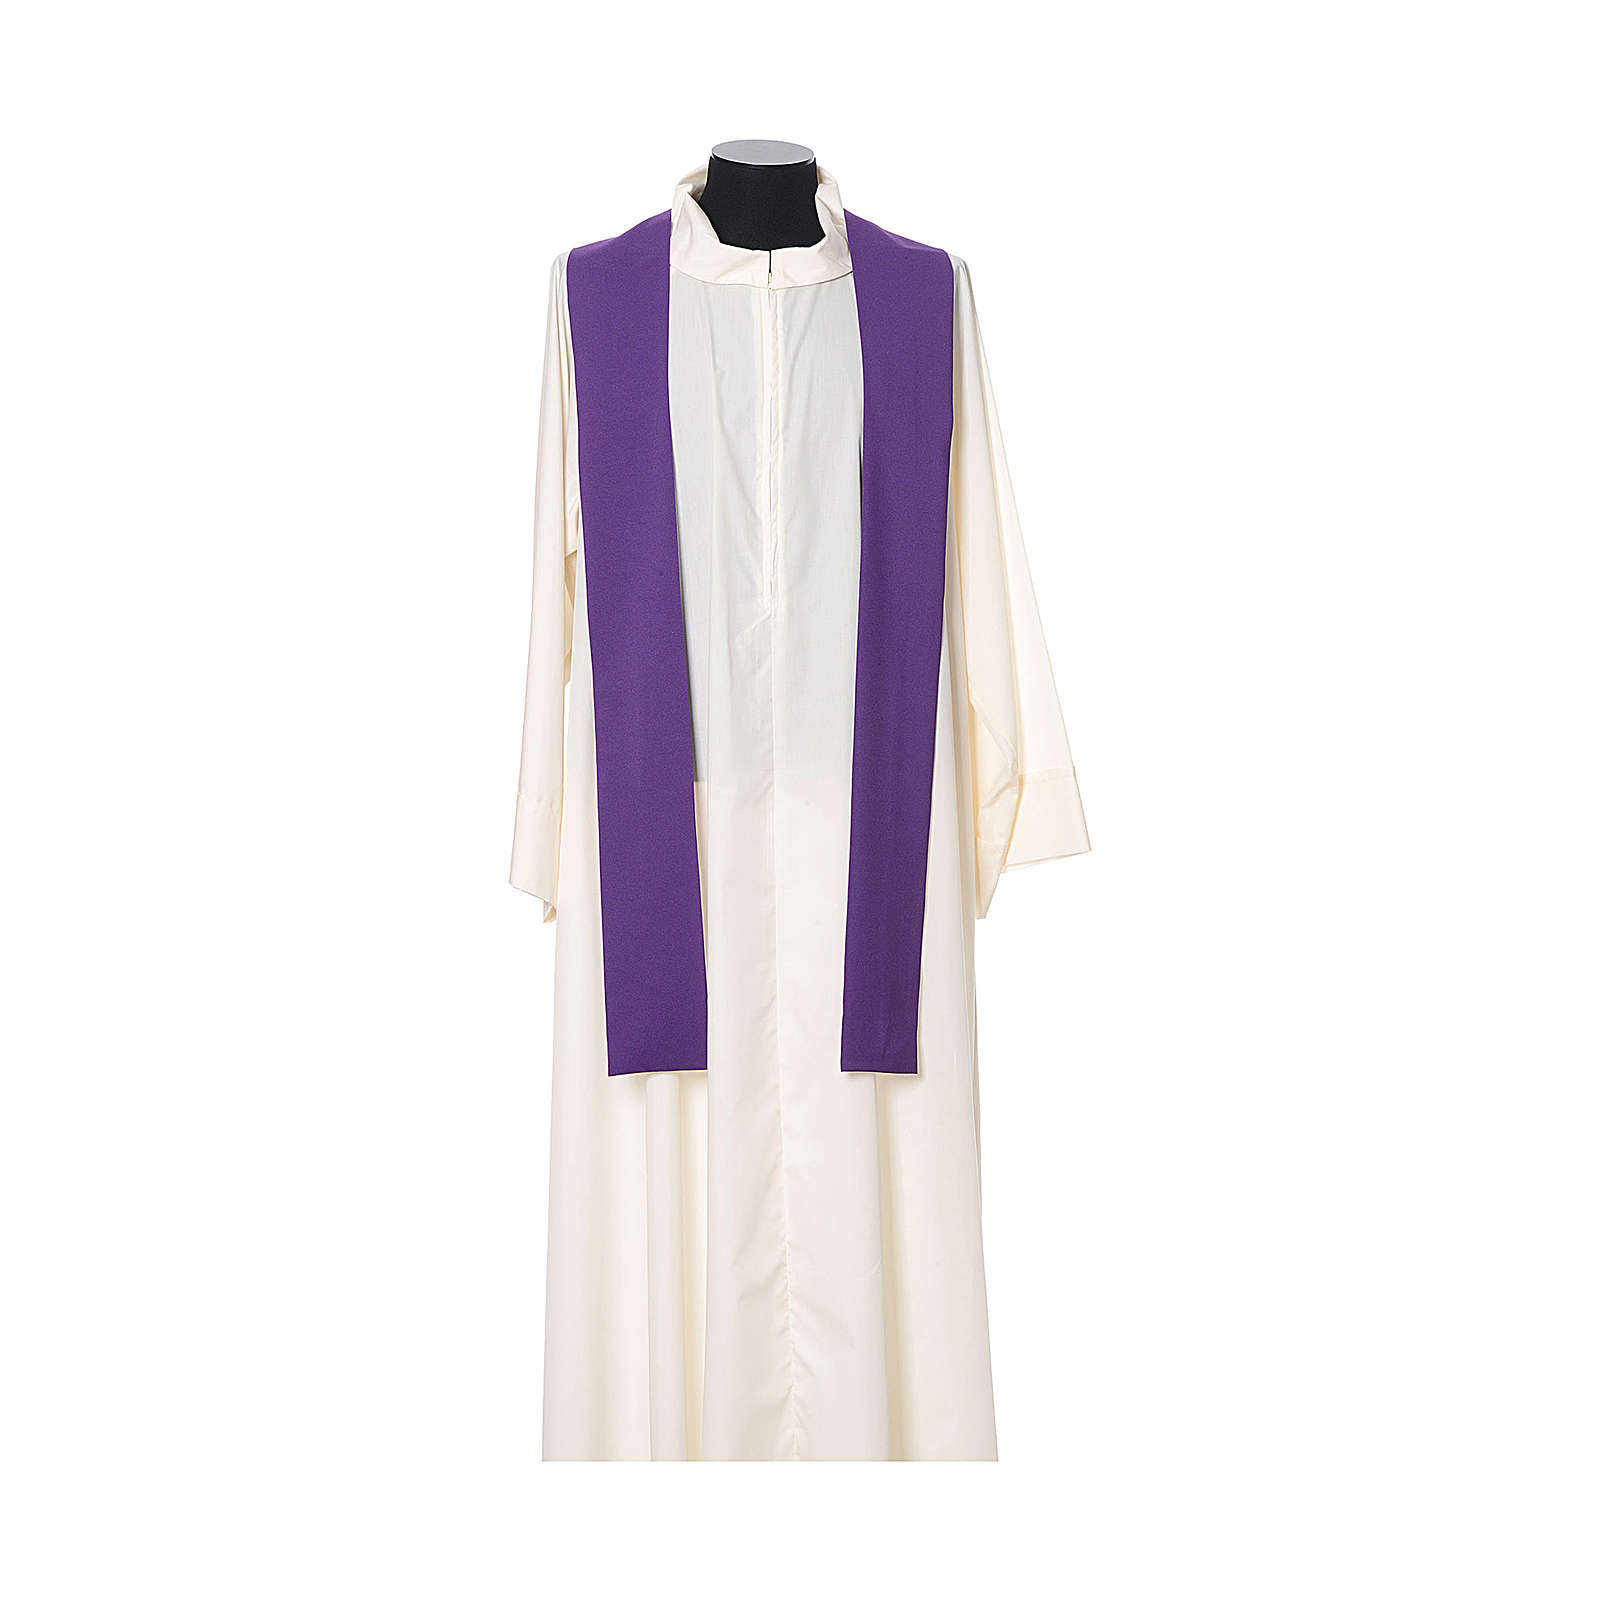 Catholic Priest Chasuble with cross embroidery on front and back, ultra lightweight Vatican fabric 4